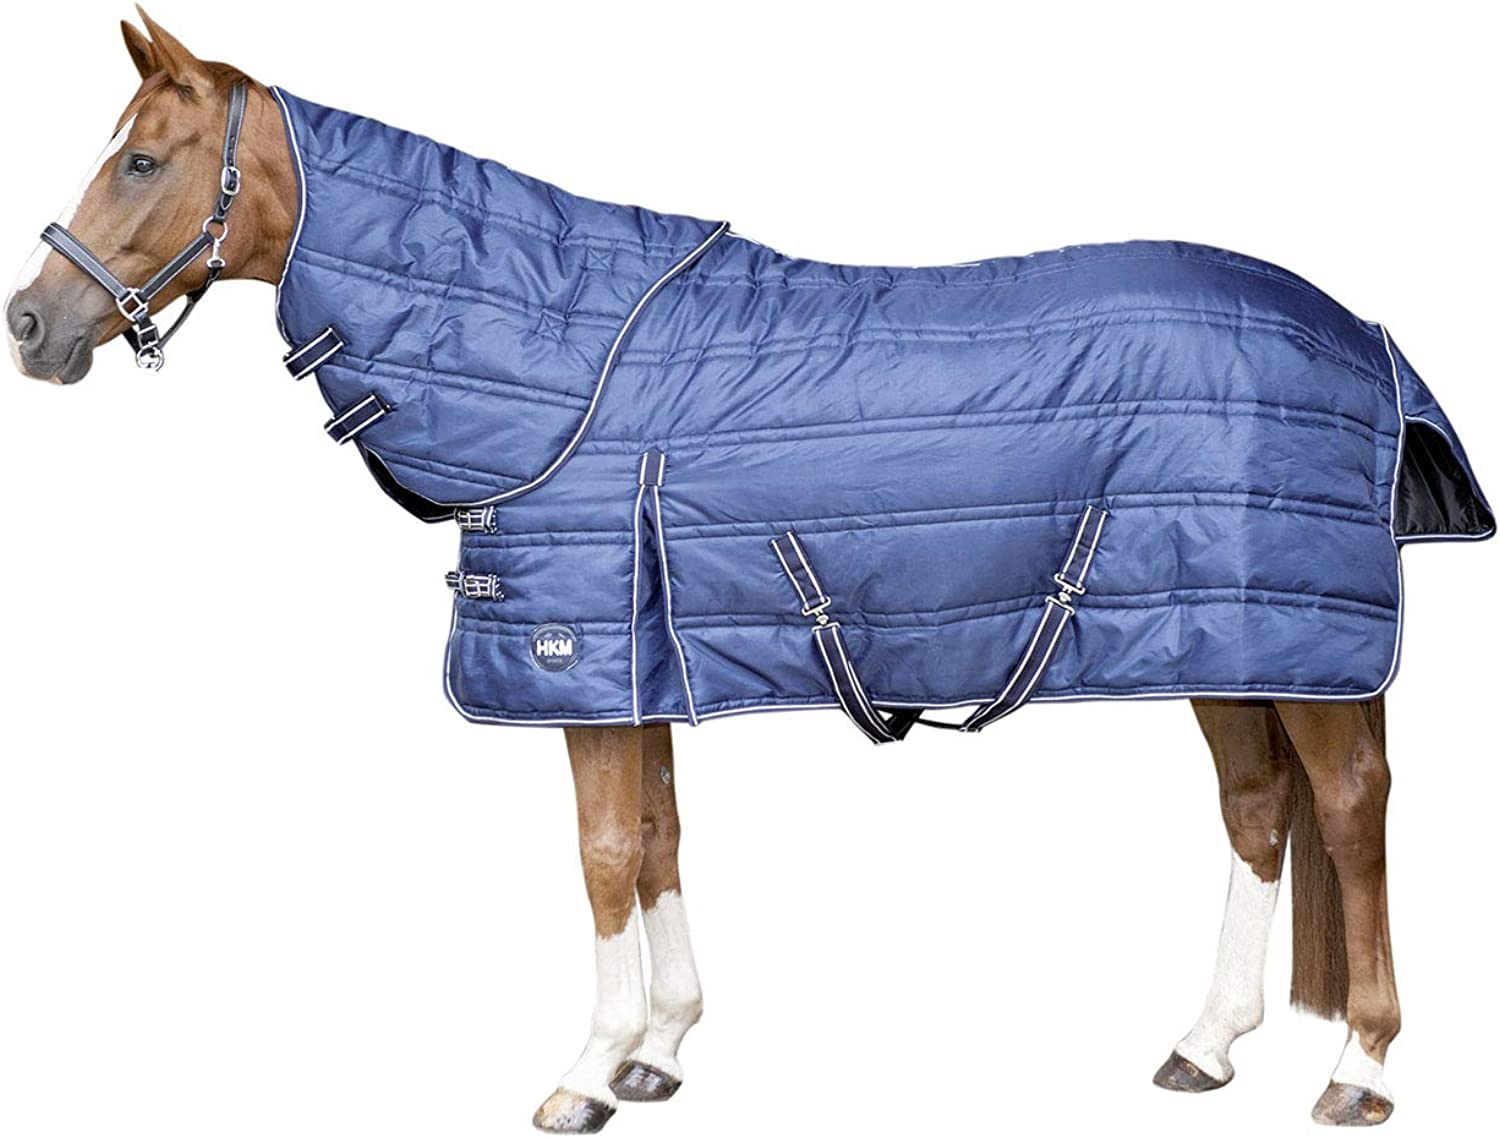 Hkm Hkm 4057052345234 Stable Blanket with Removable Neck Part 6900 Dark bluee 115